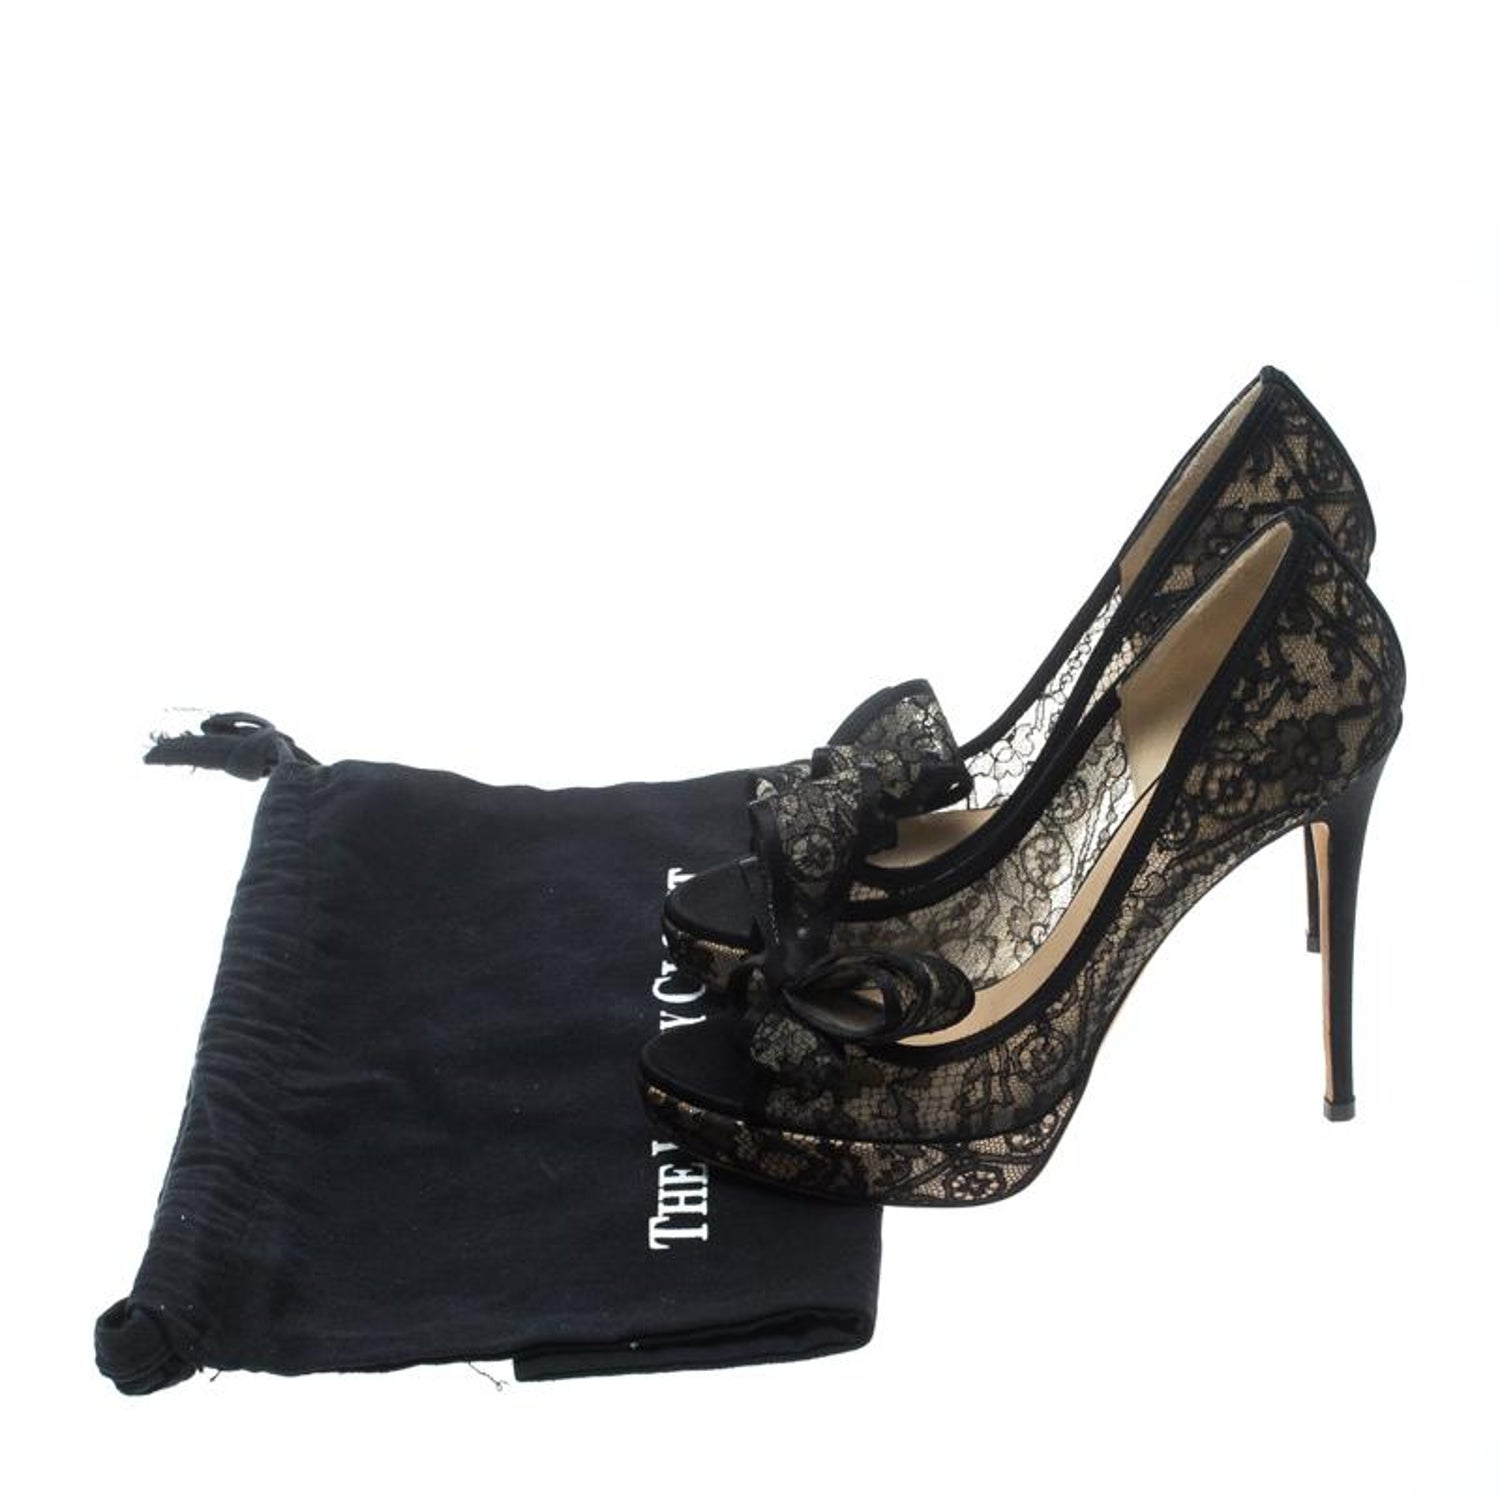 b2ecbb05b8 Valentino Black Floral Couture Bow Lace Peep Toe Platform Pumps Size 37 For  Sale at 1stdibs